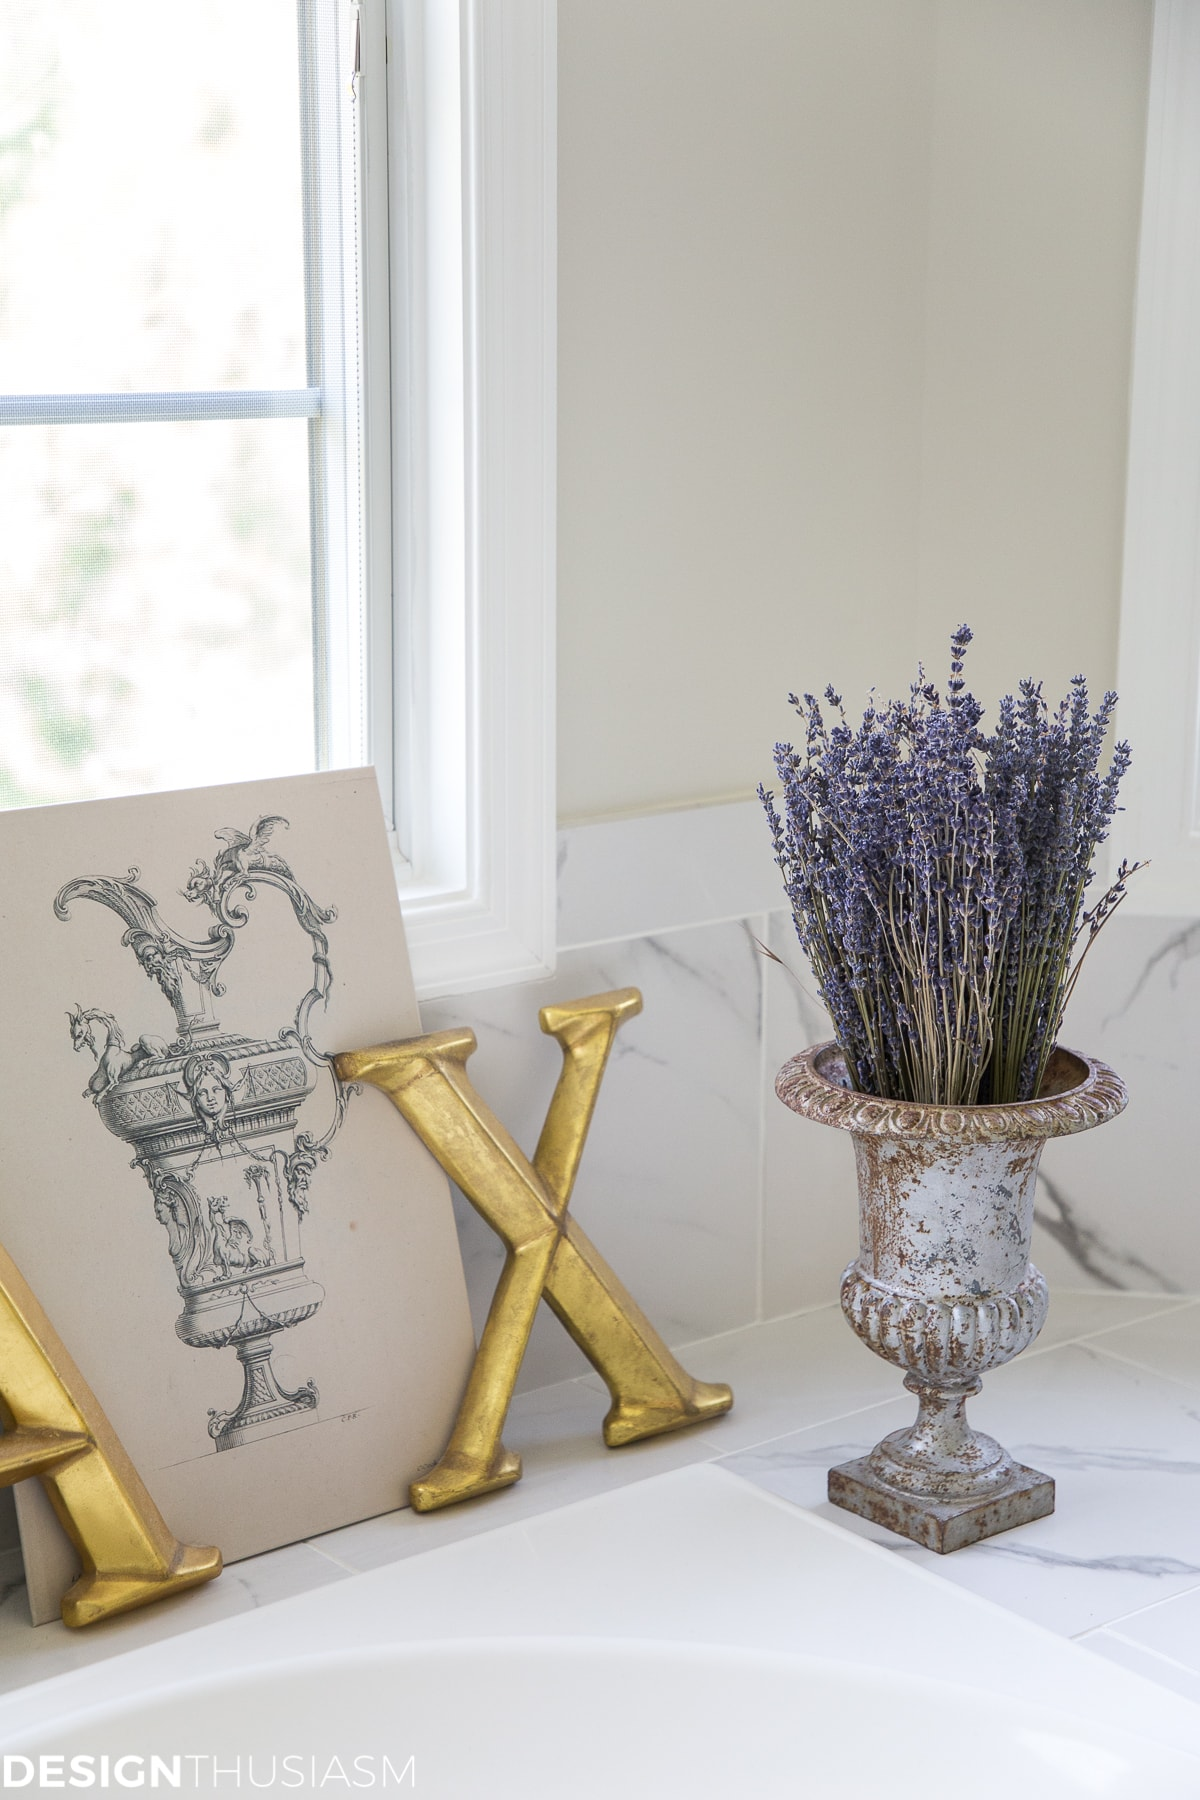 summer refresh bathroom decor lavender in an urn